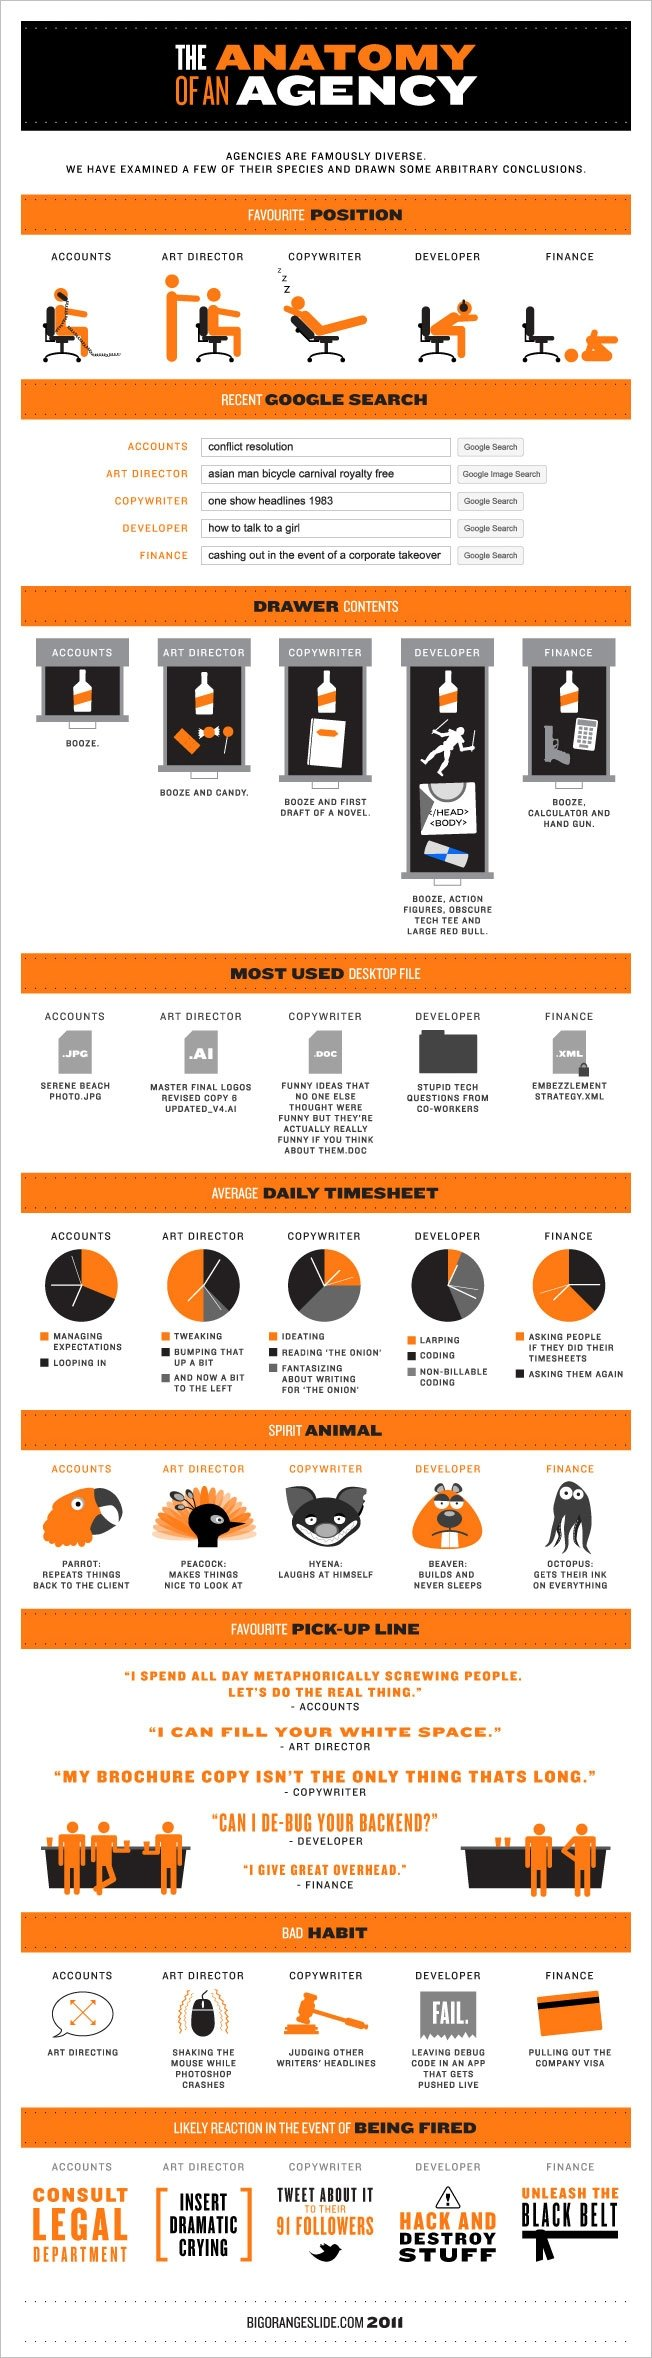 The Anatomy of an Agency #infographic #advertising #marketing